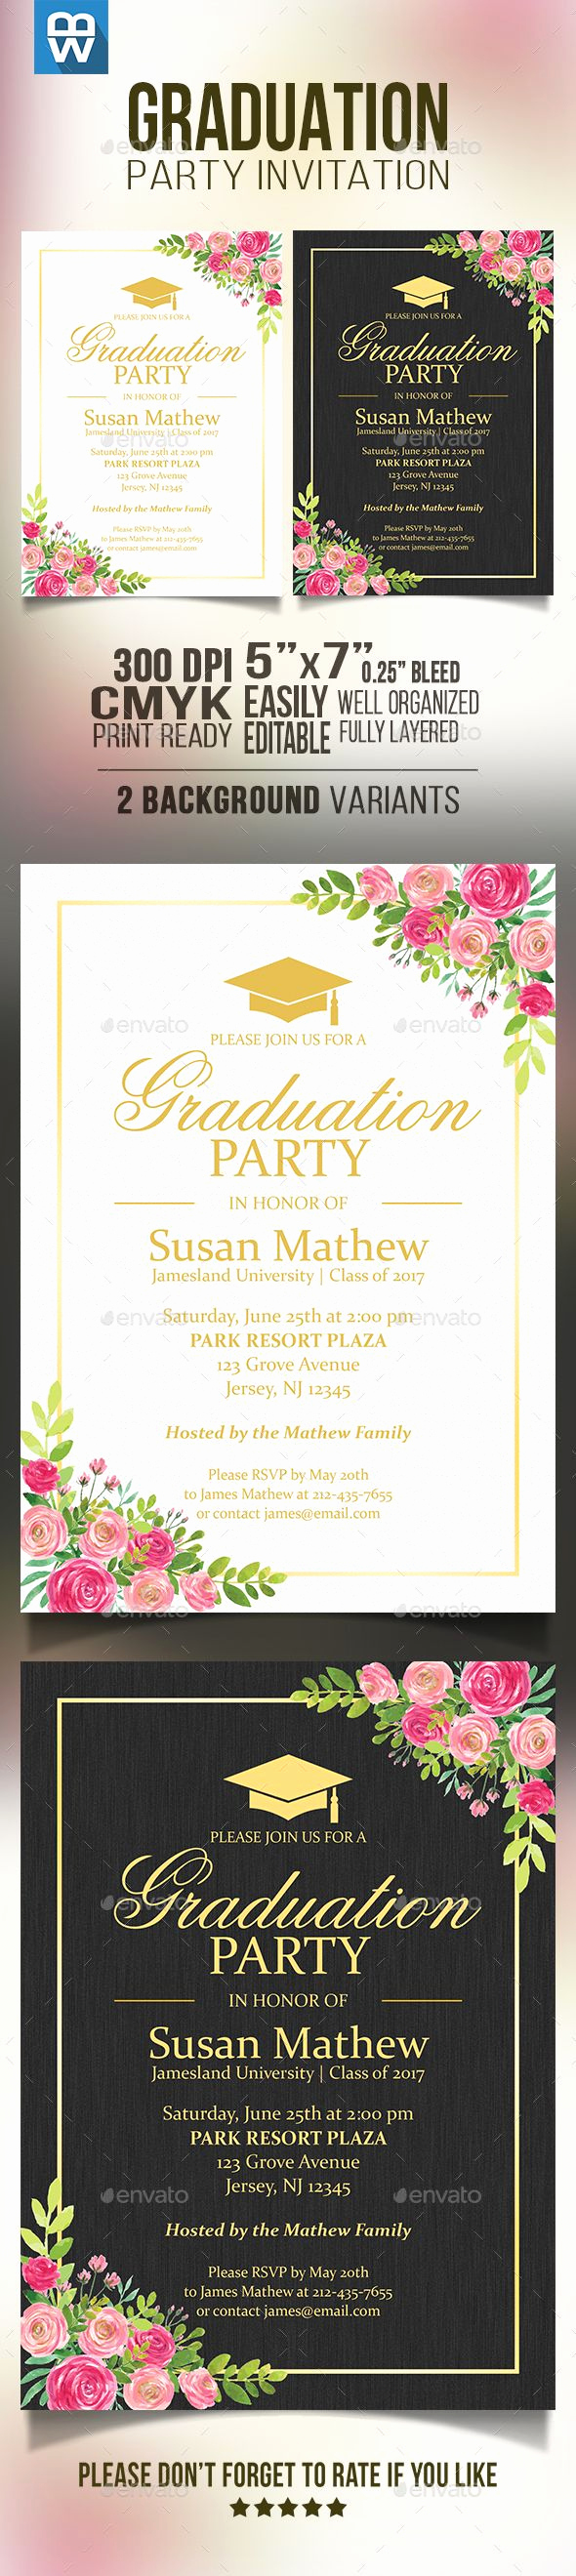 Free Graduation Party Invitation Templates New 25 Unique Invitation Templates Ideas On Pinterest